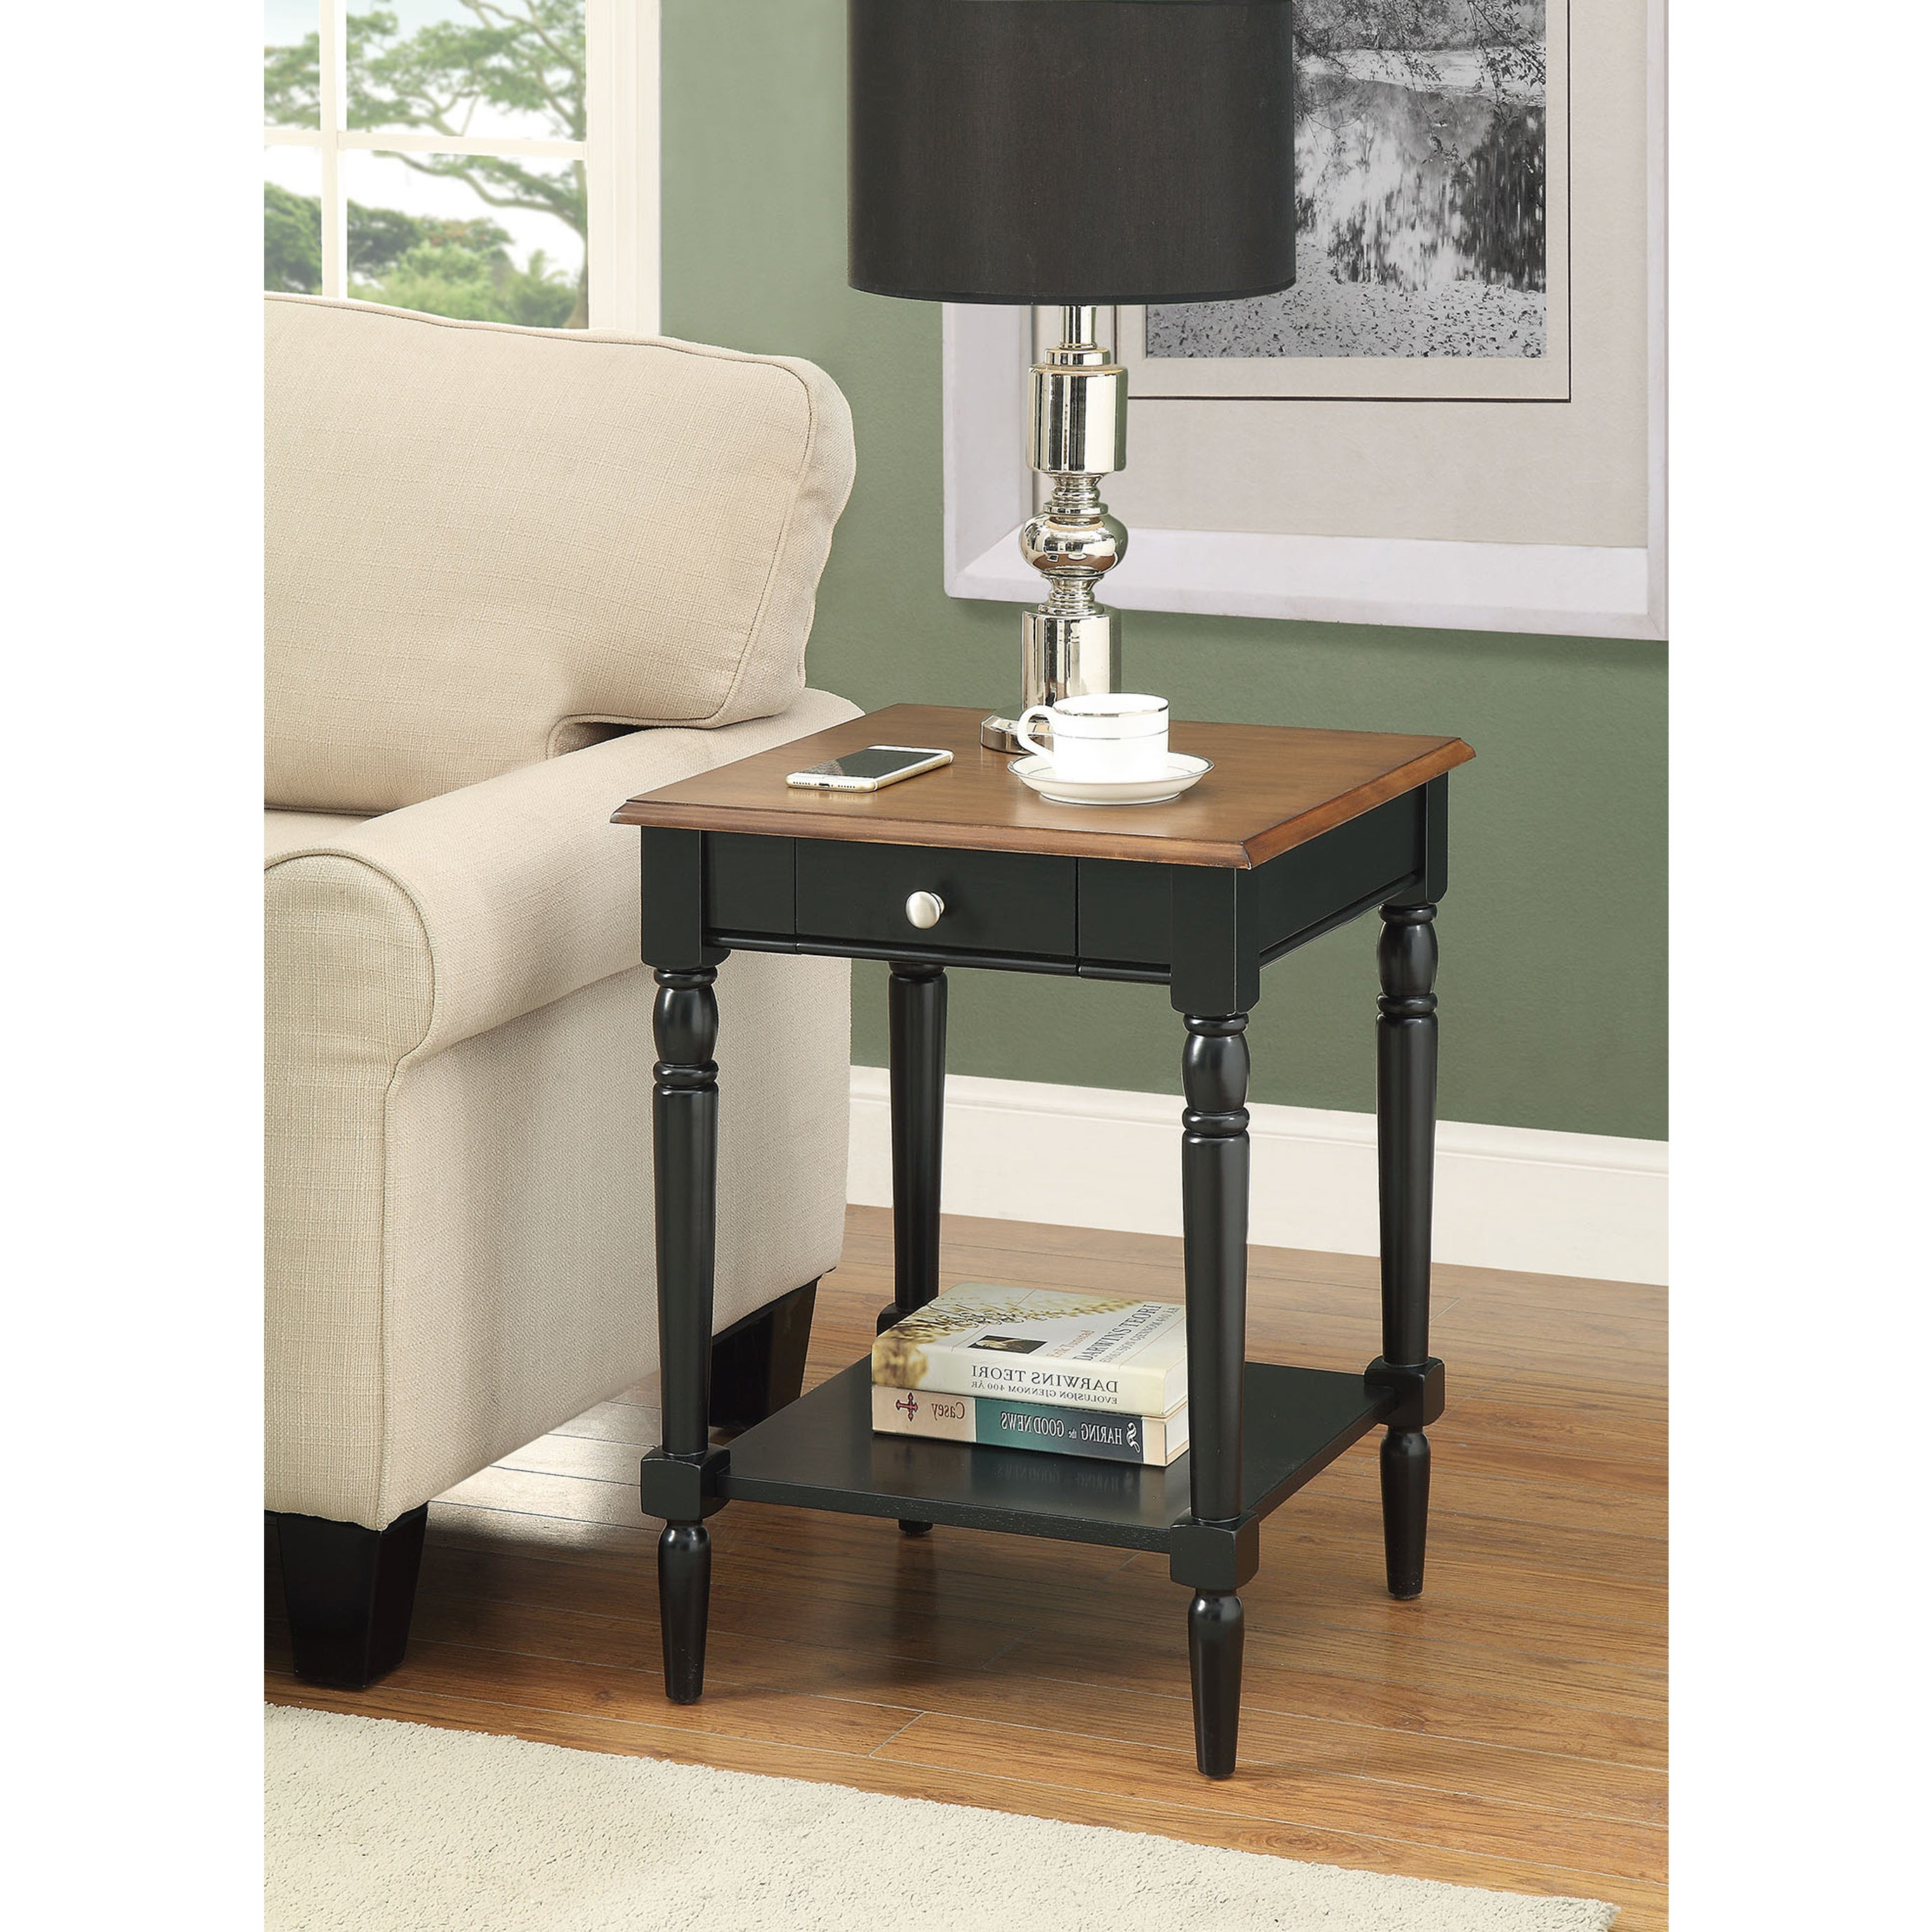 Copper Grove Lantana Wooden Two Tone Coffee Table Within Popular Copper Grove Lantana Coffee Tables (View 10 of 20)